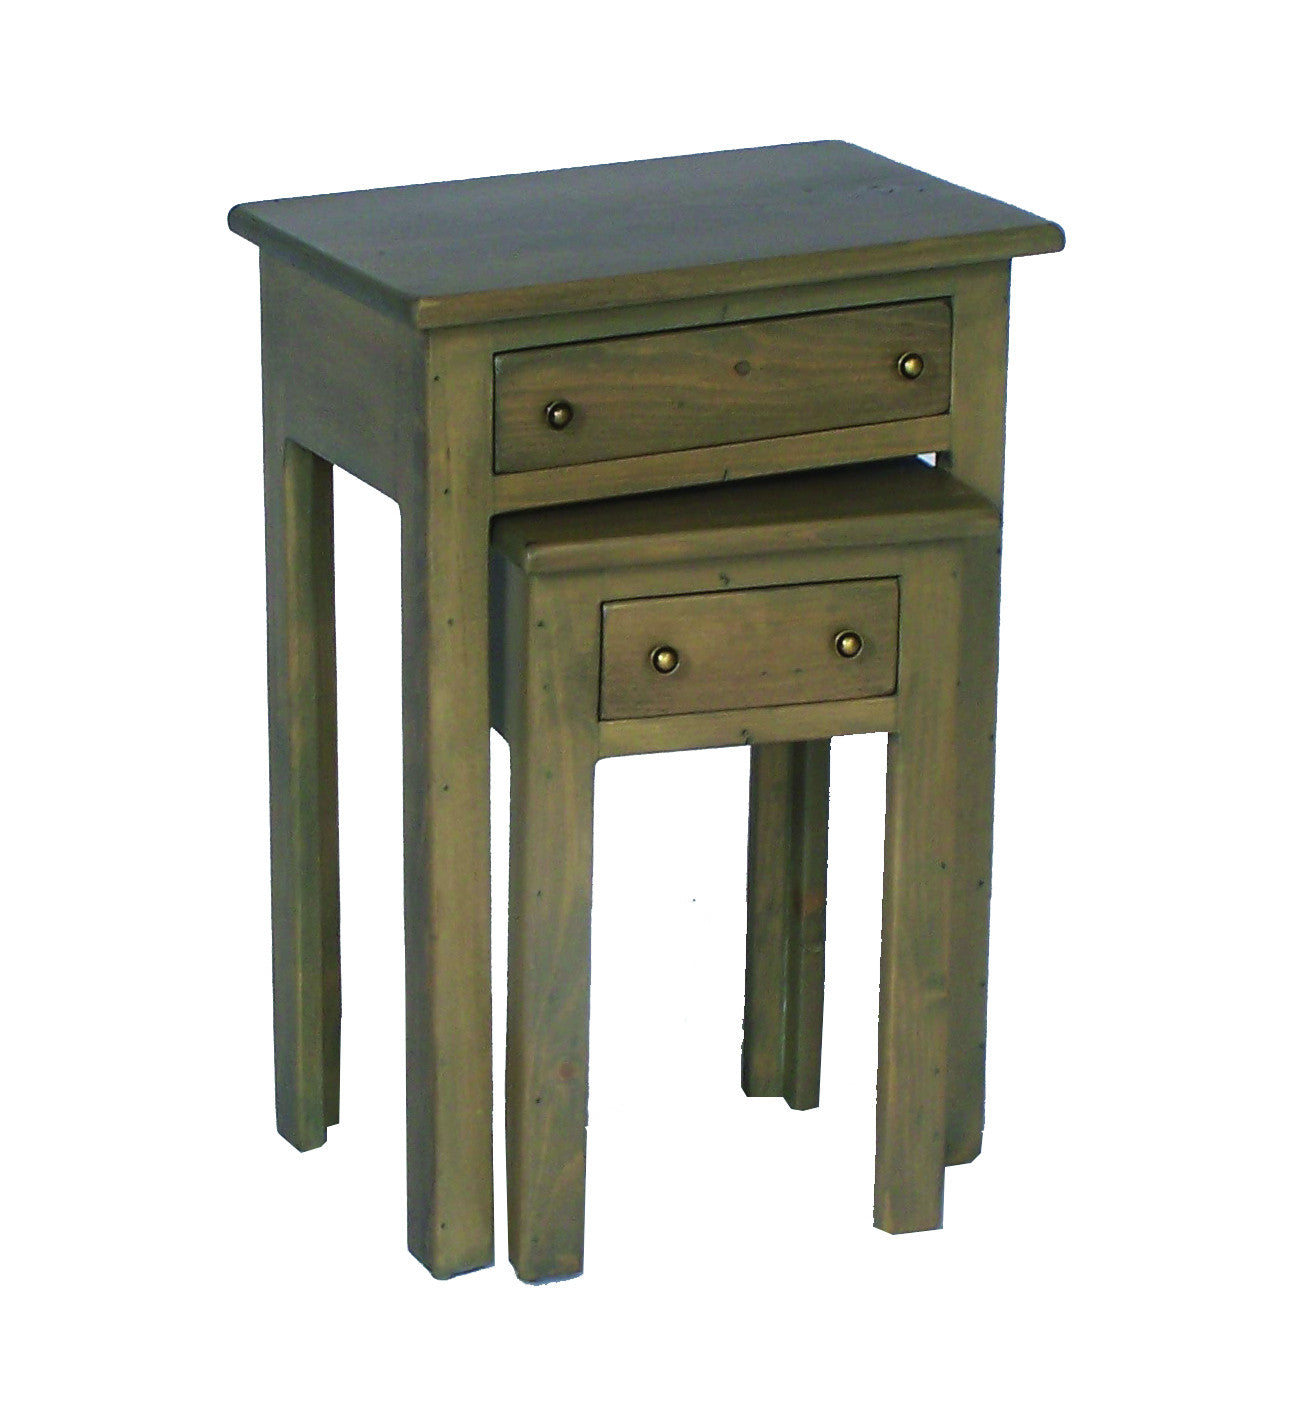 Nesting Tables W/ Drawers 2 Day Designs